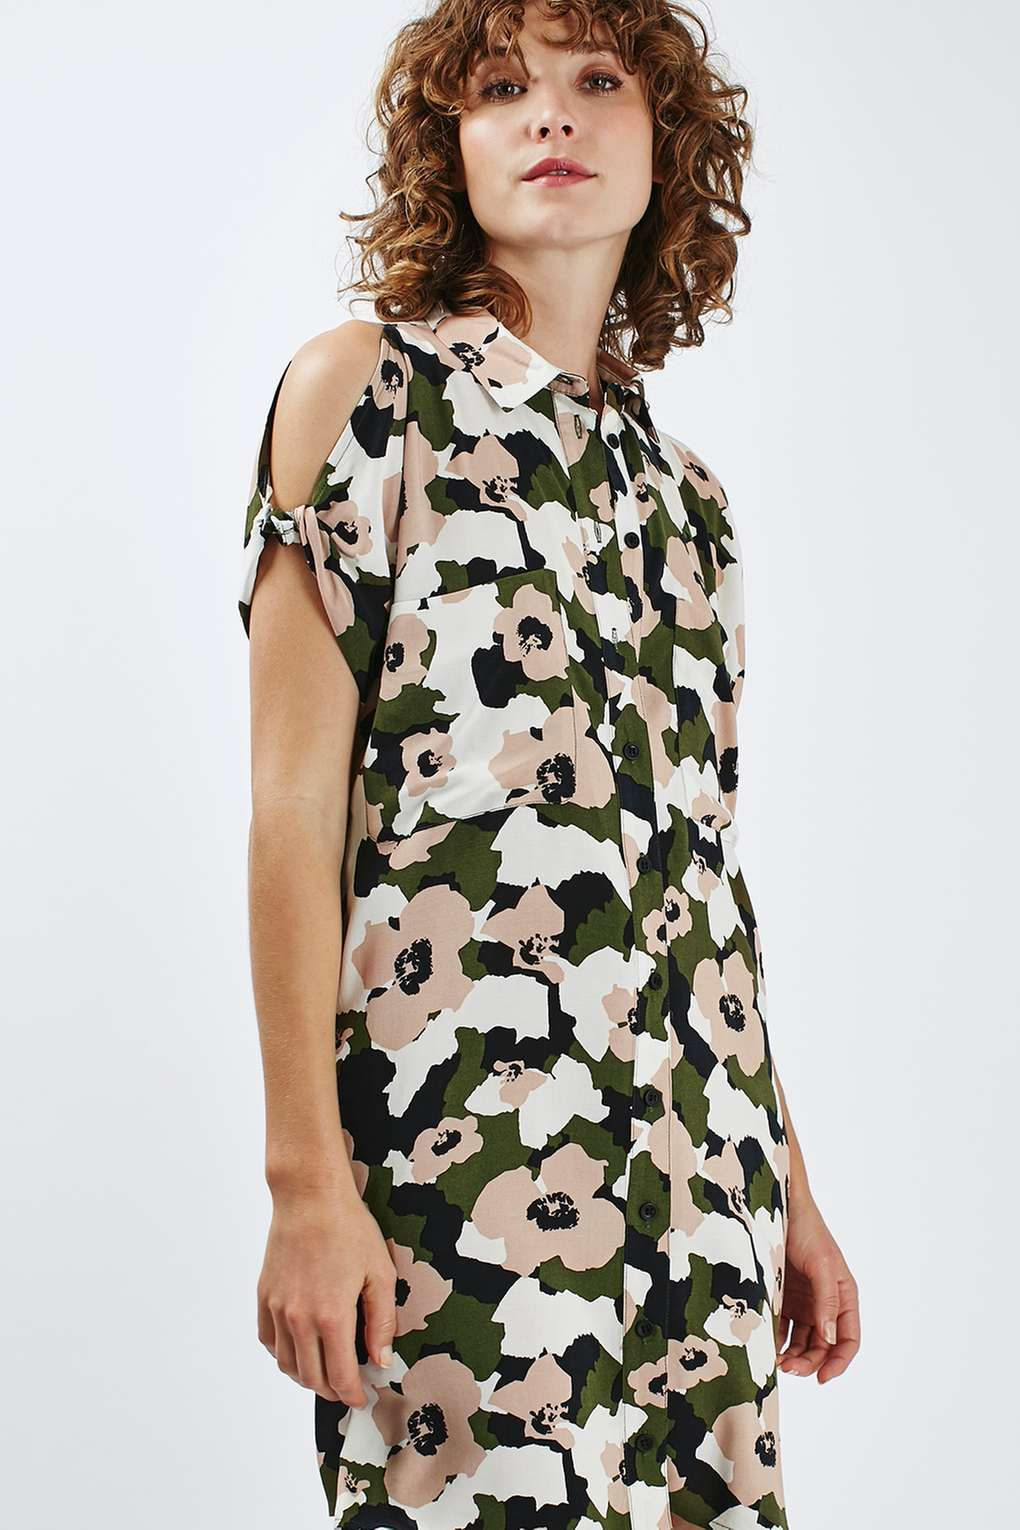 Camo Floral Shirt Dress - Dresses - Clothing in 2019  1702168179